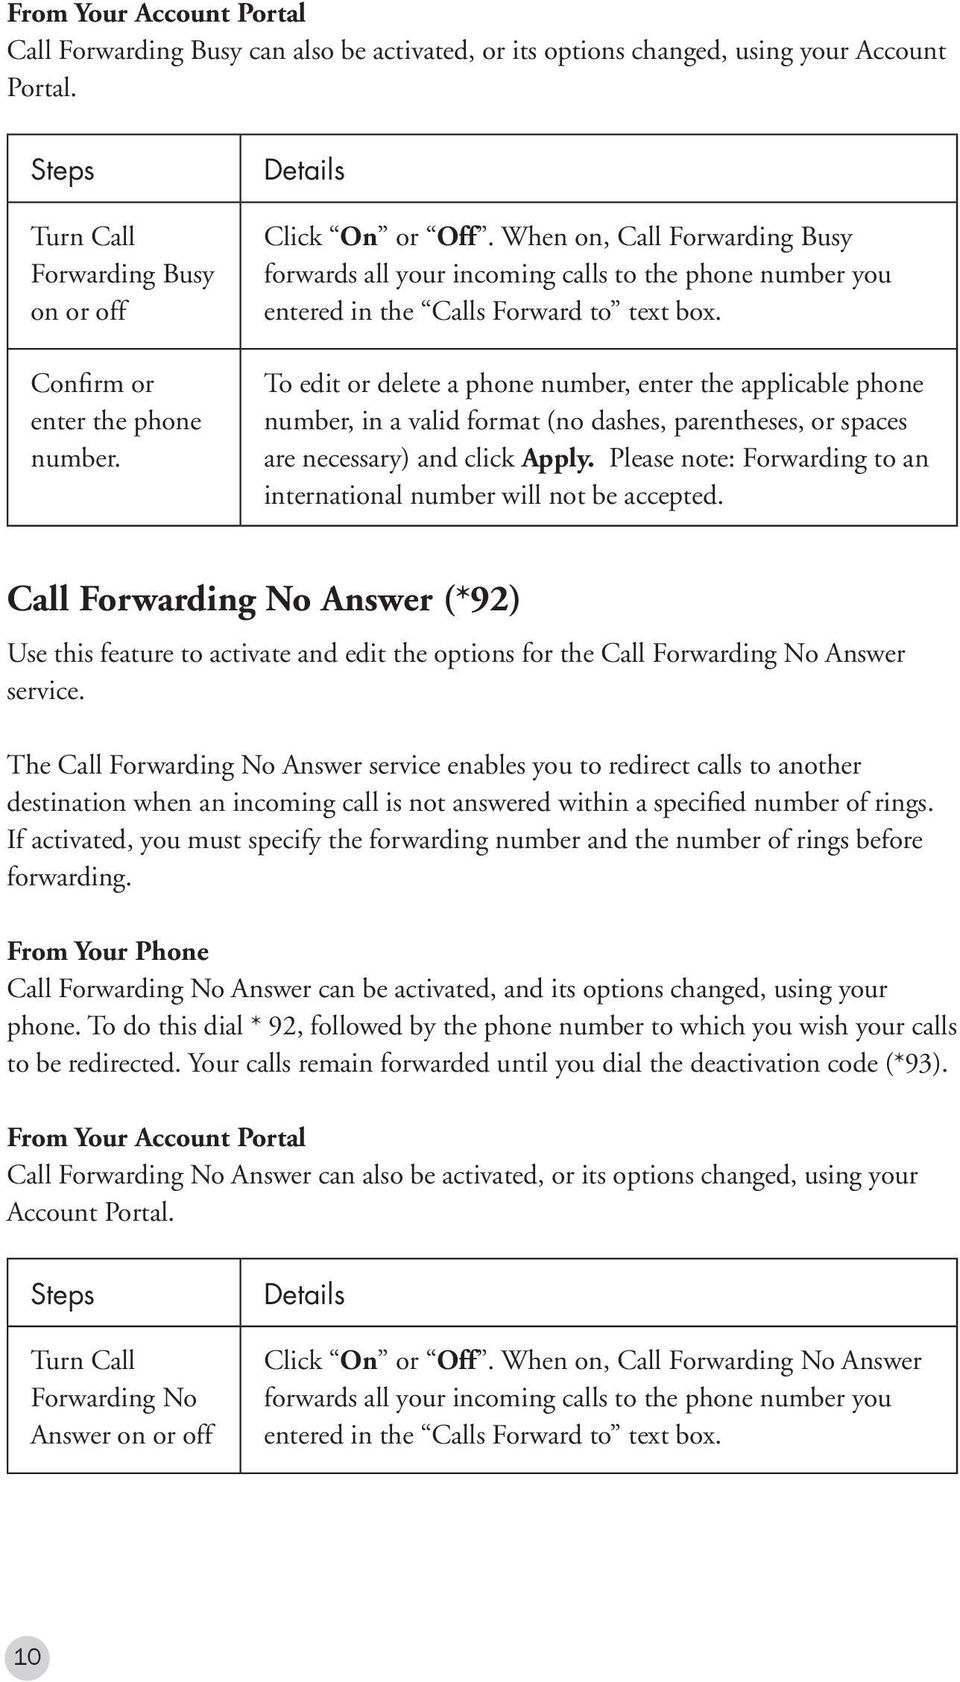 To edit or delete a phone number, enter the applicable phone number, in a valid format (no dashes, parentheses, or spaces are necessary) and click Apply.